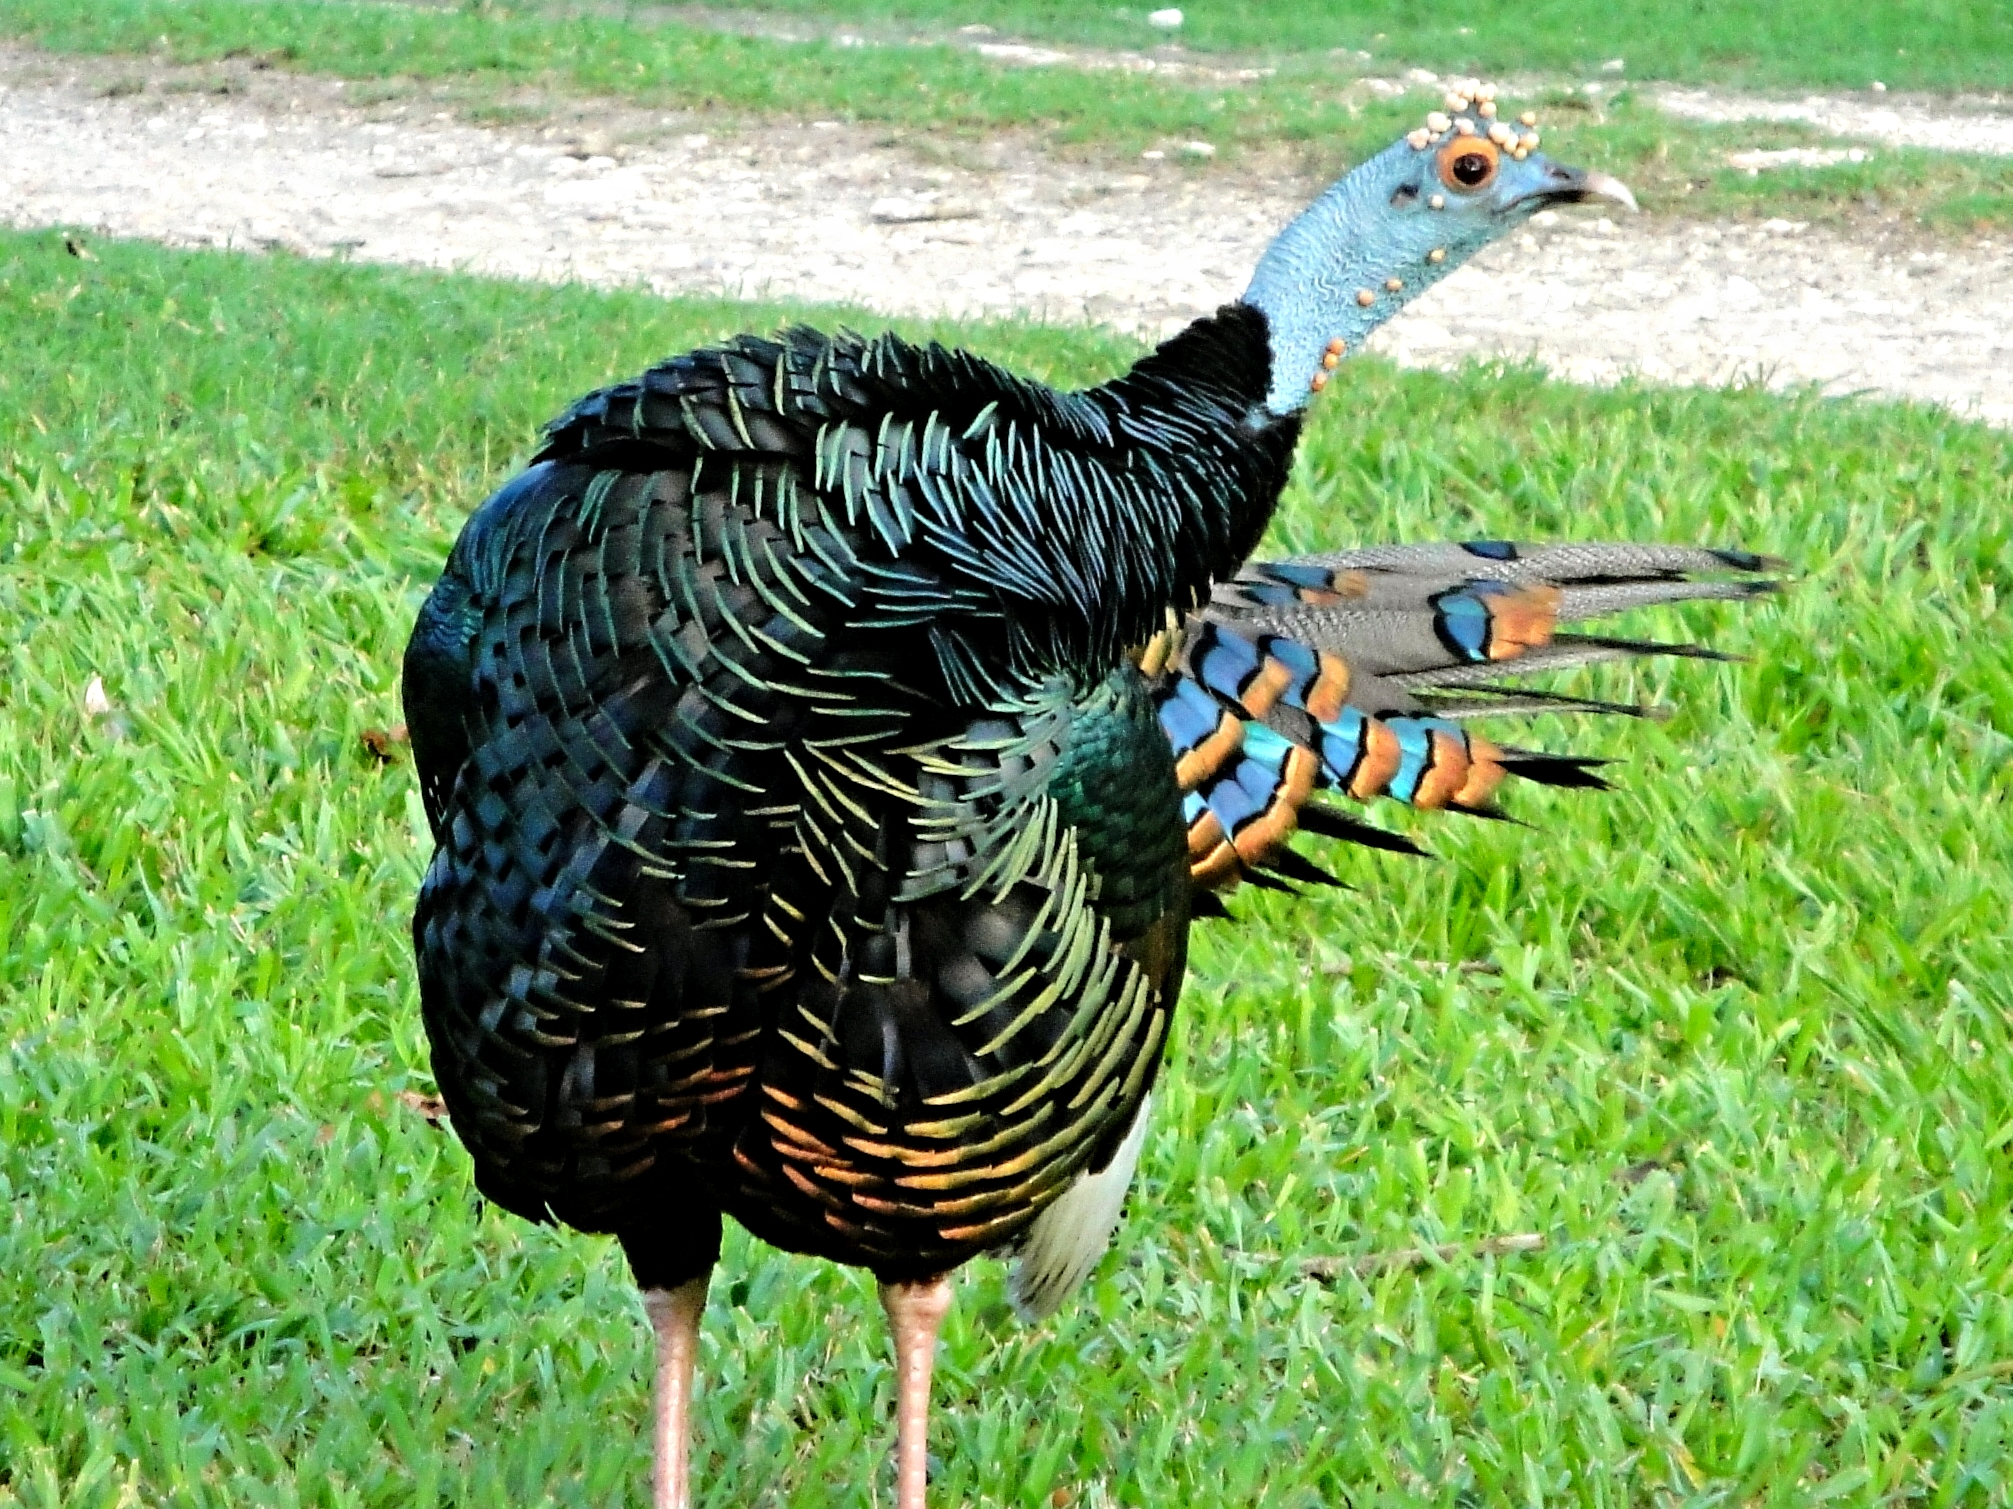 An Ocellated Turkey strikes a pose